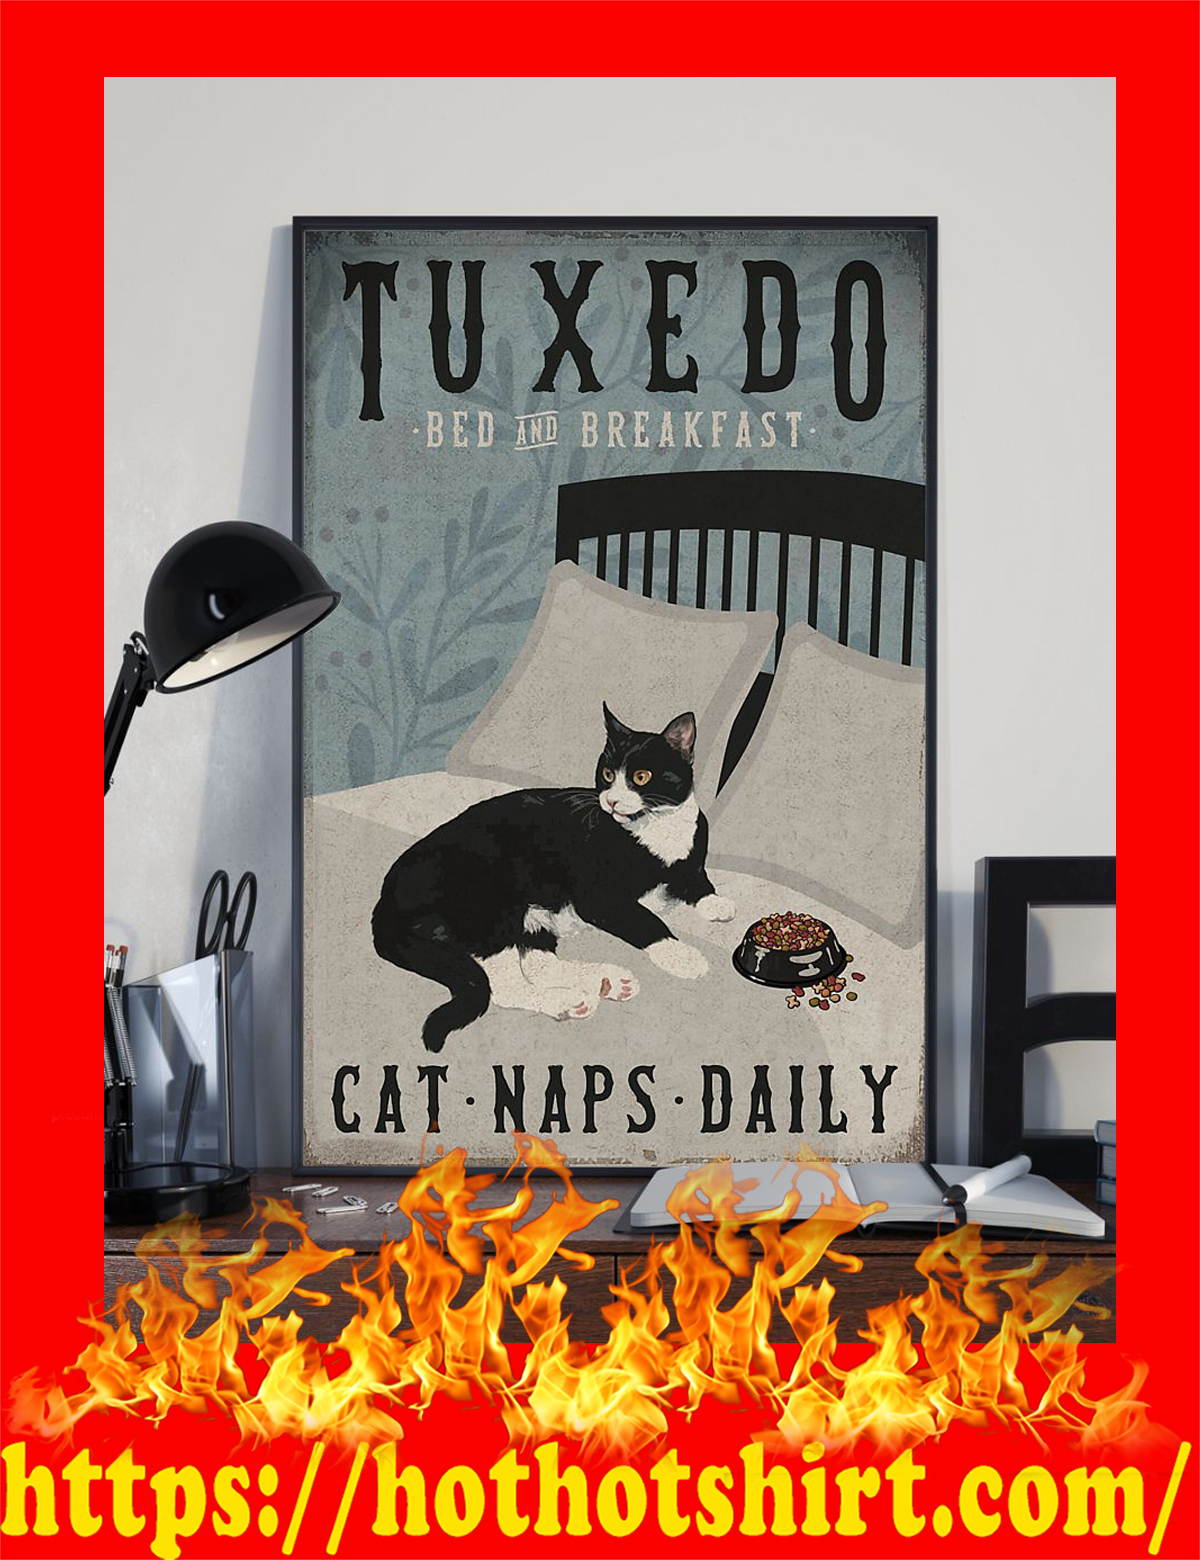 Tuxedo cat bed and breakfast cat naps daily poster - pic 3